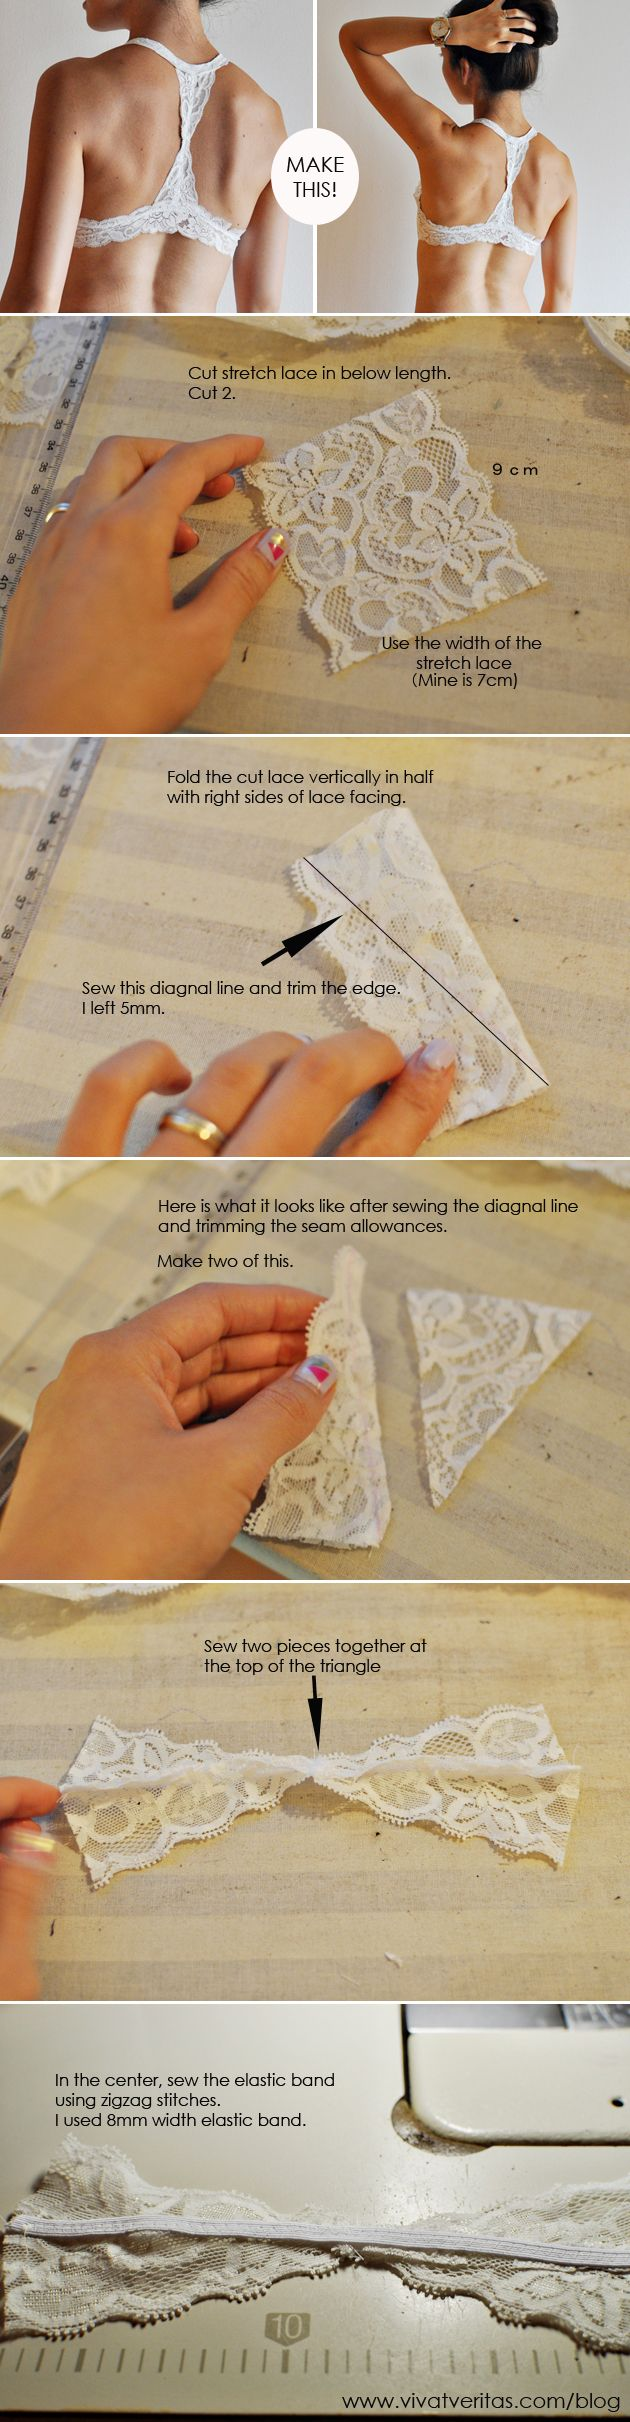 "Racer Back Bra Sewing Tutorial (via vivatveritas) ***This is actually just a racer-back variation made to the ""Watson"" bra, a bra pattern available to purchase online, download, and print @ home."